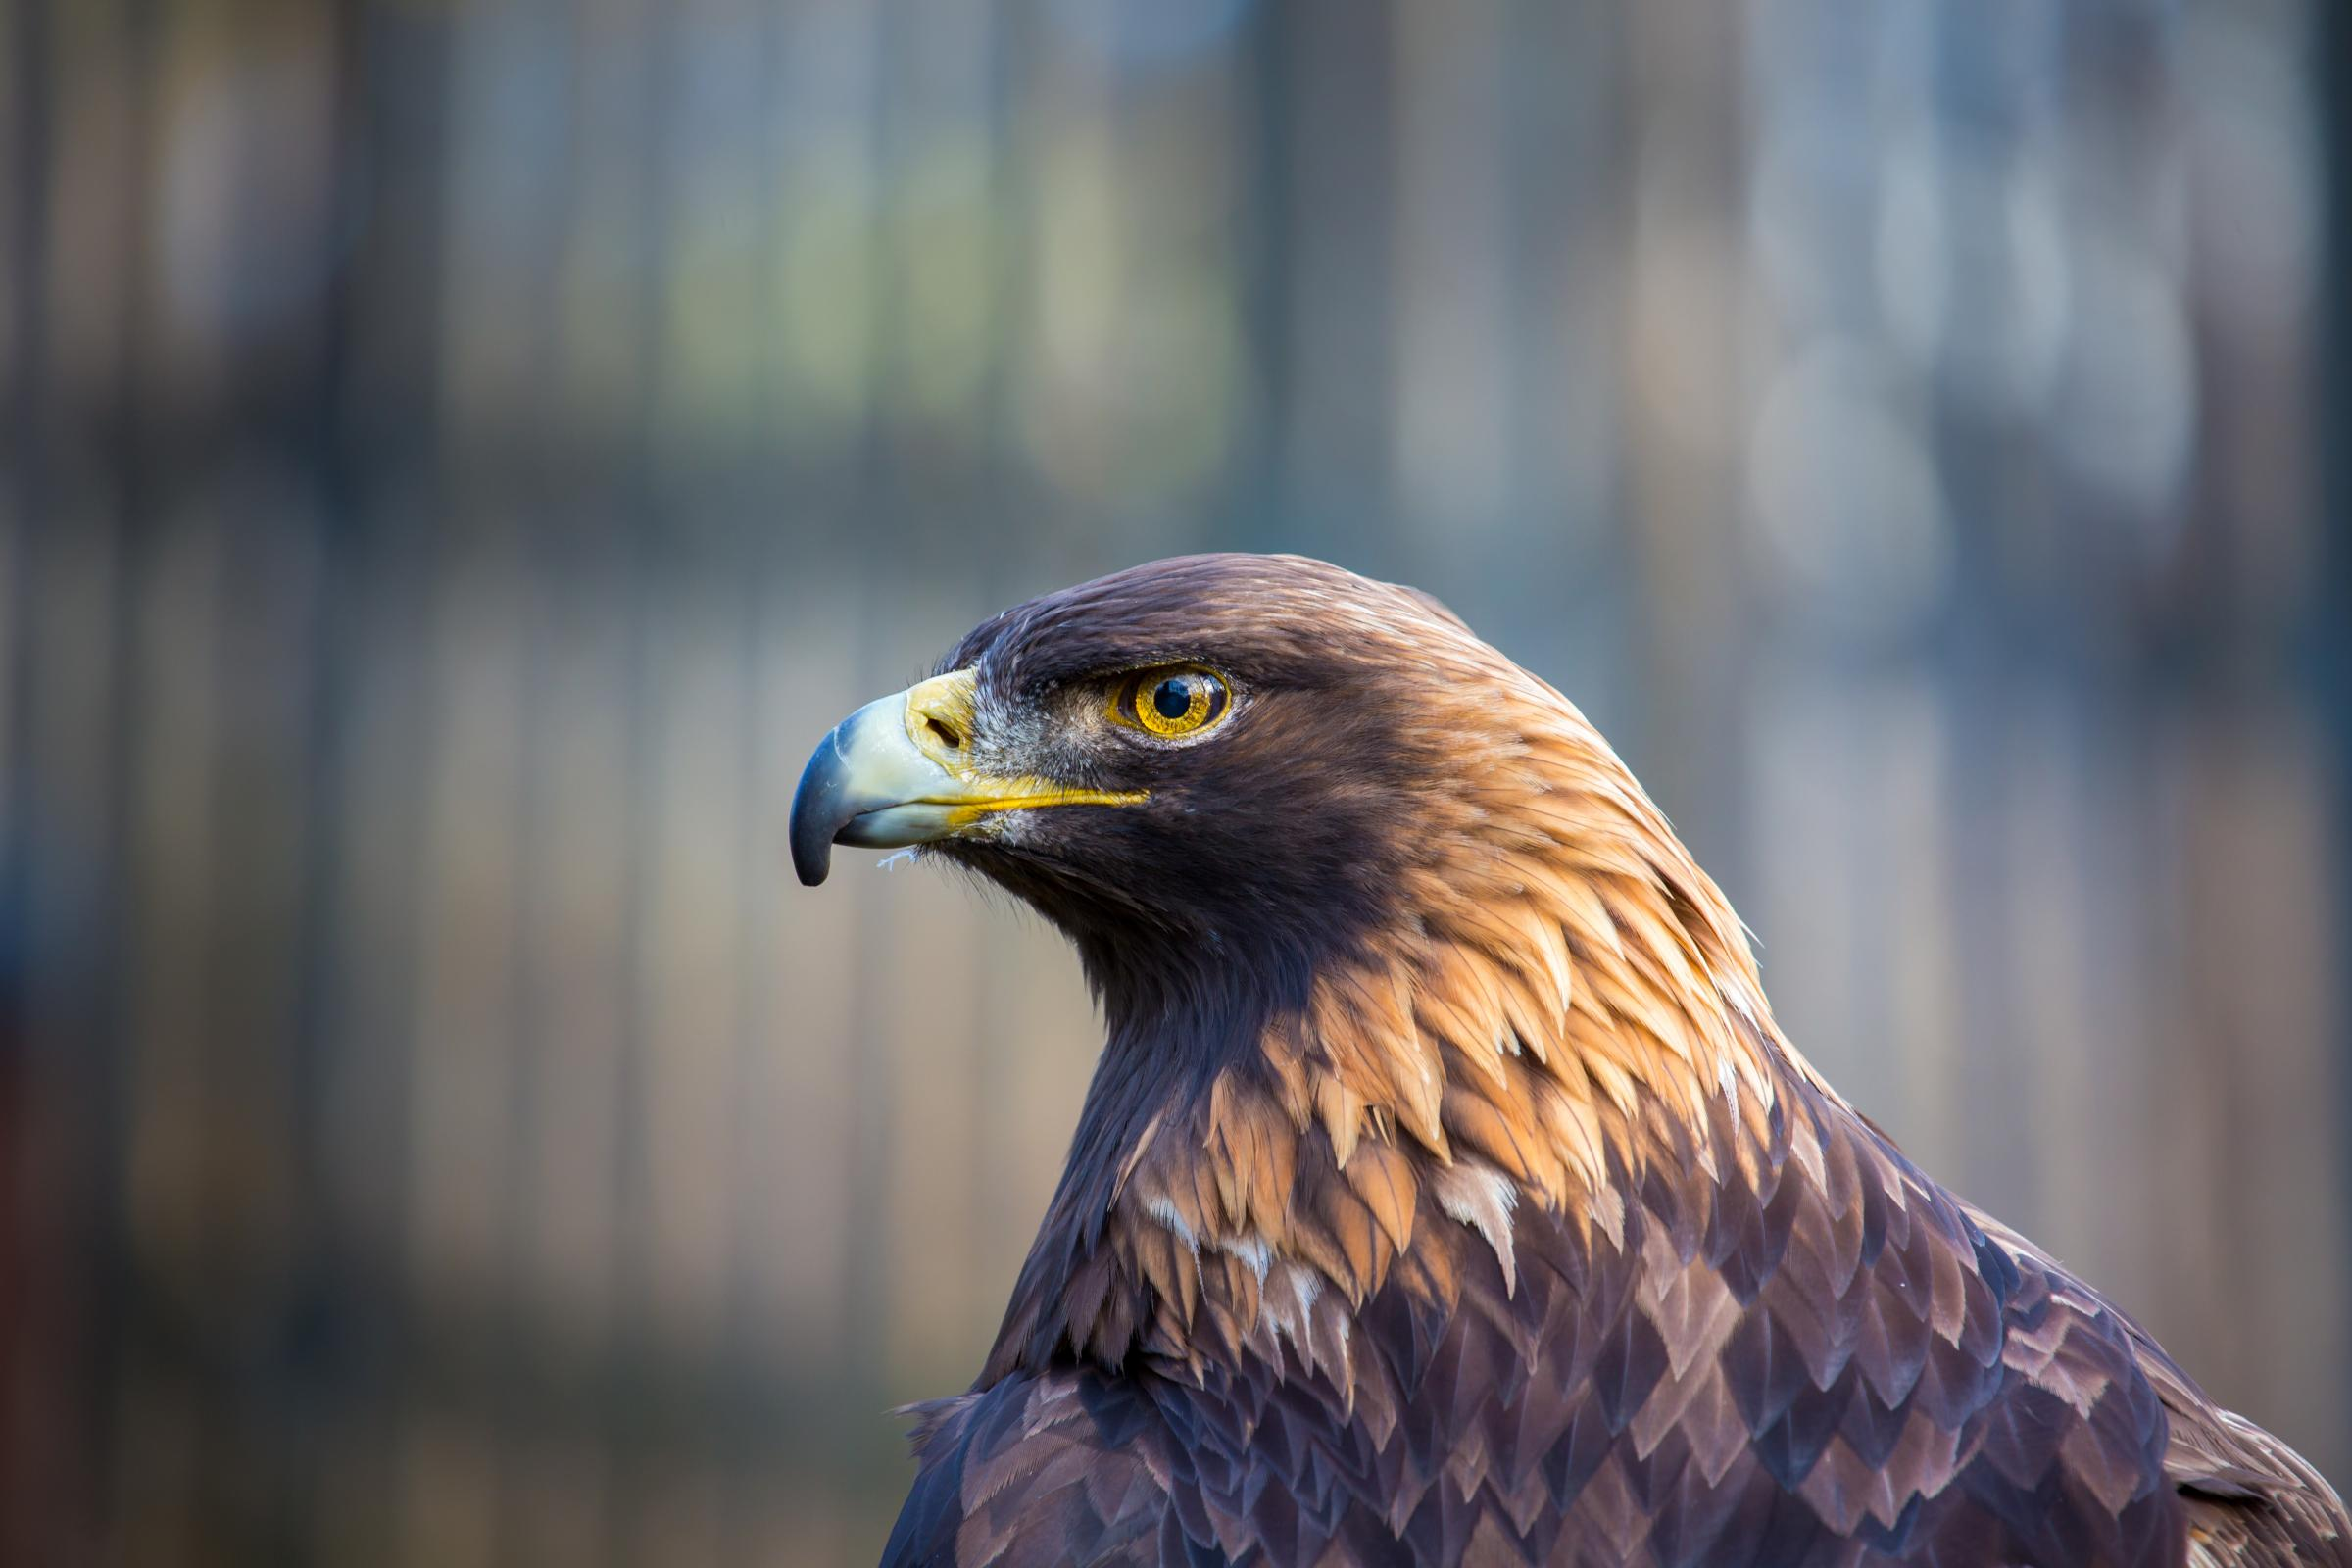 Portrait of a Golden Eagle. These birds of prey are the kings and queens of the sky, flying at great heights and distances with acute eyesight for homing in on prey..